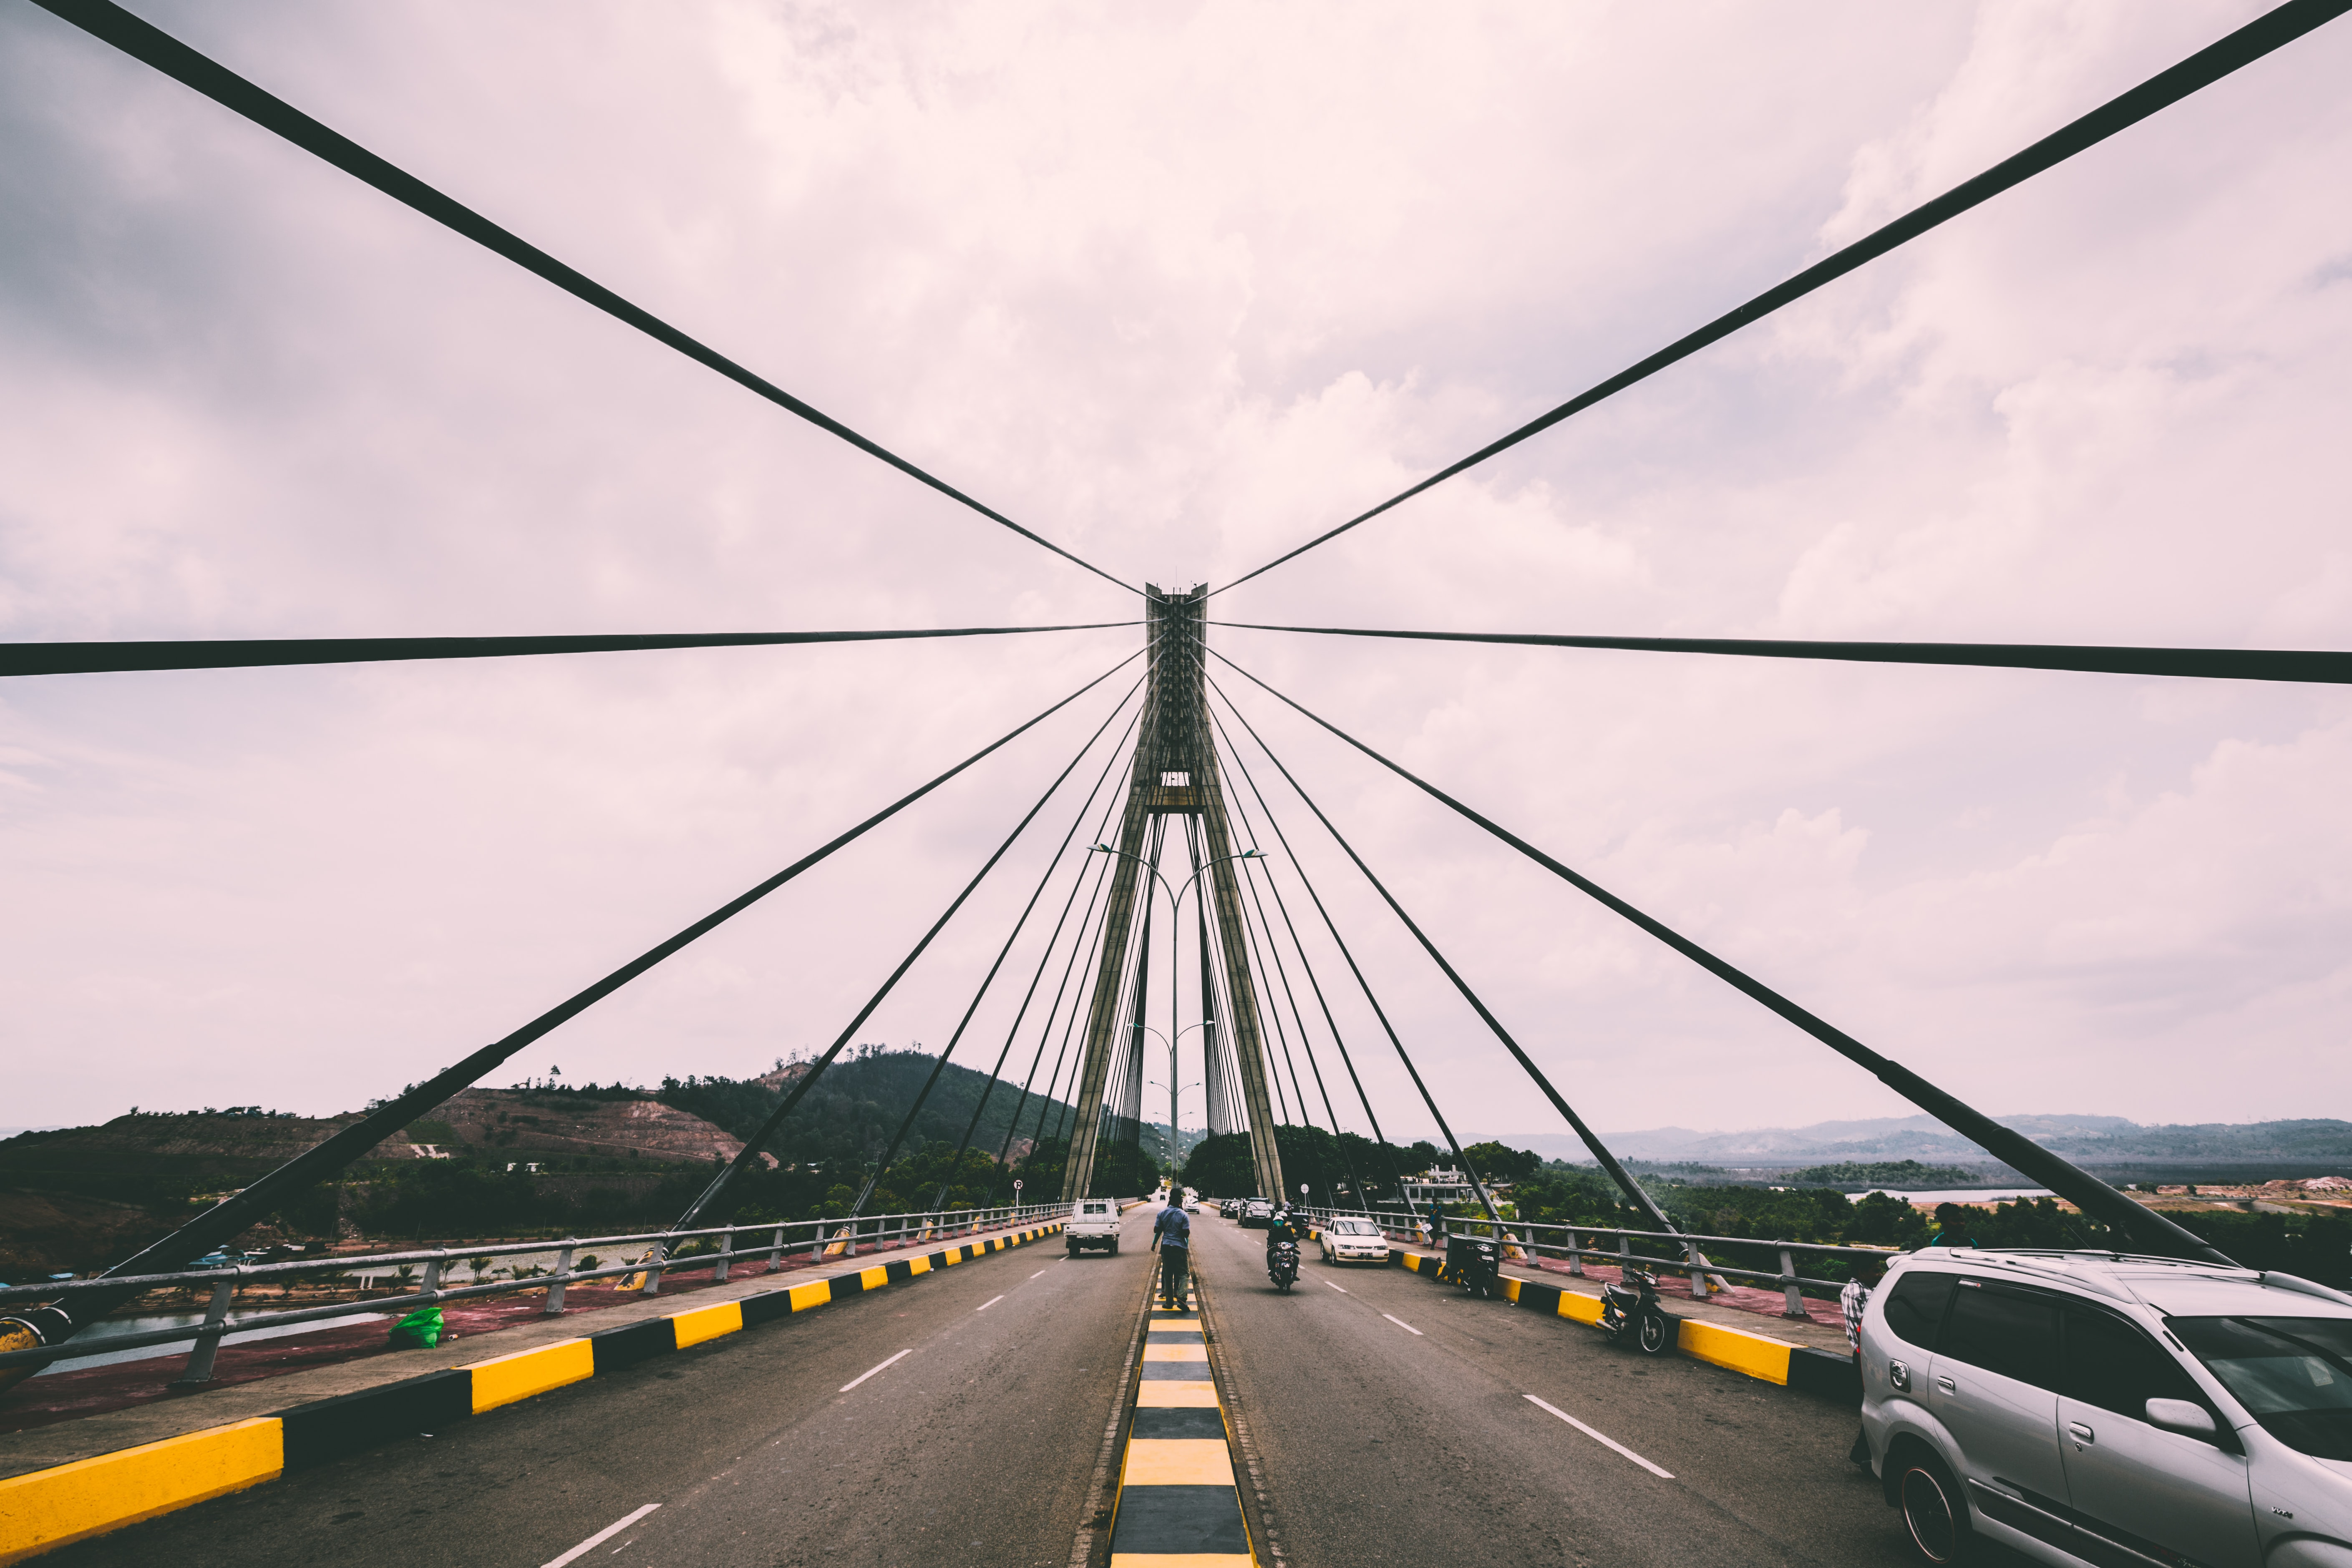 Highway traffic crossing the suspension bridge.